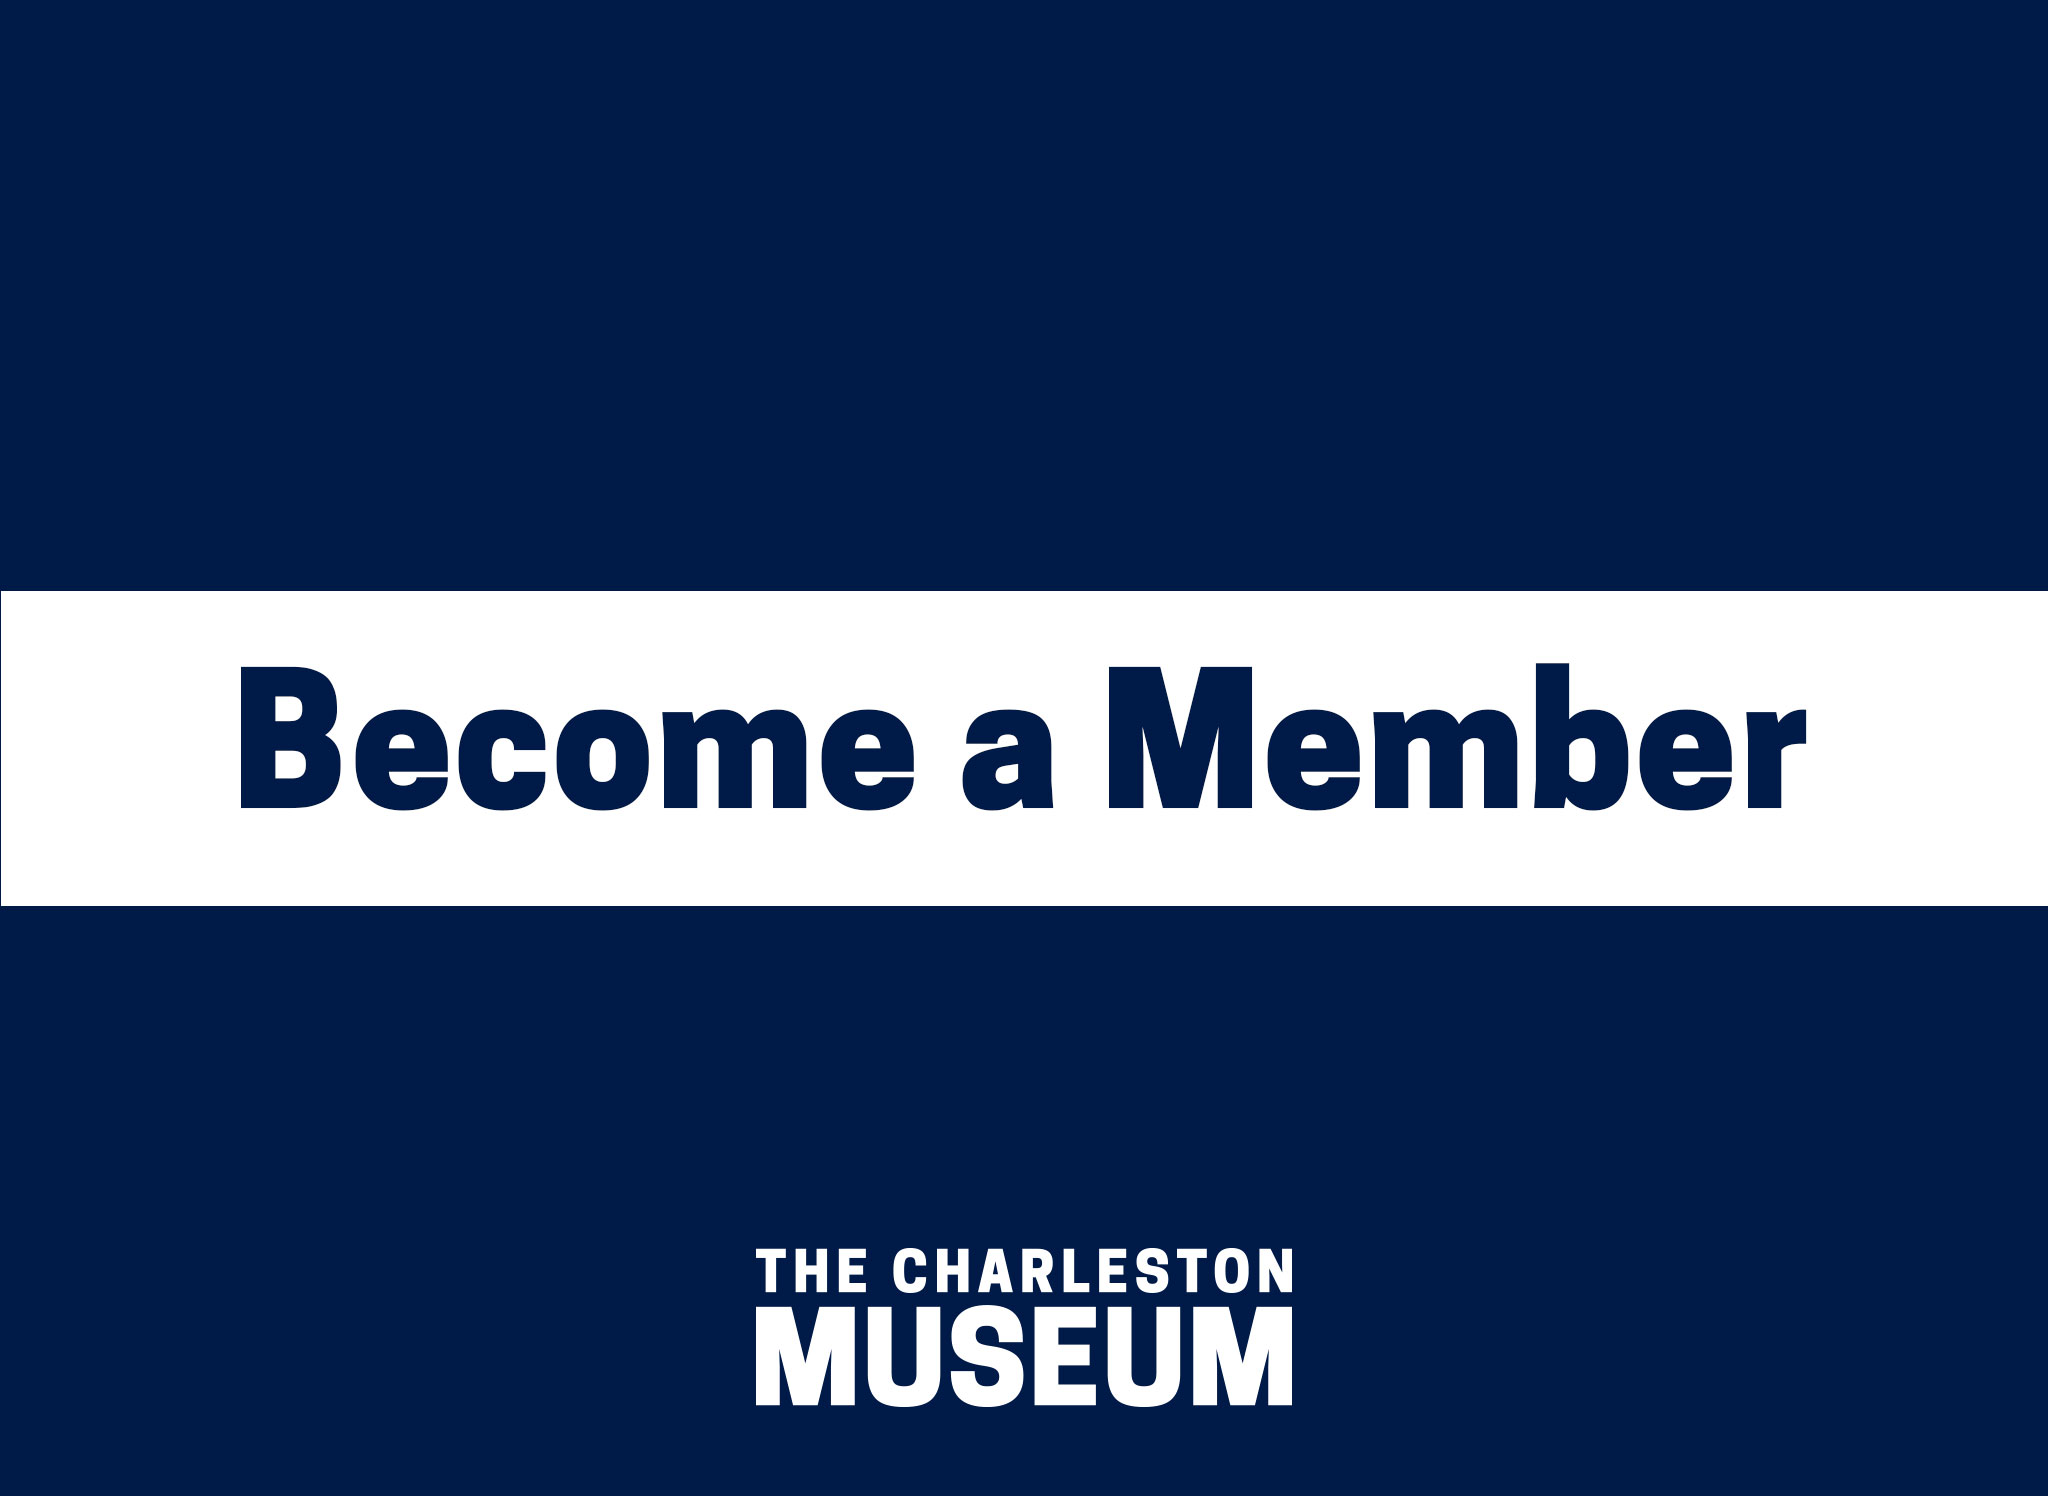 Become a Member of the Charleston Museum